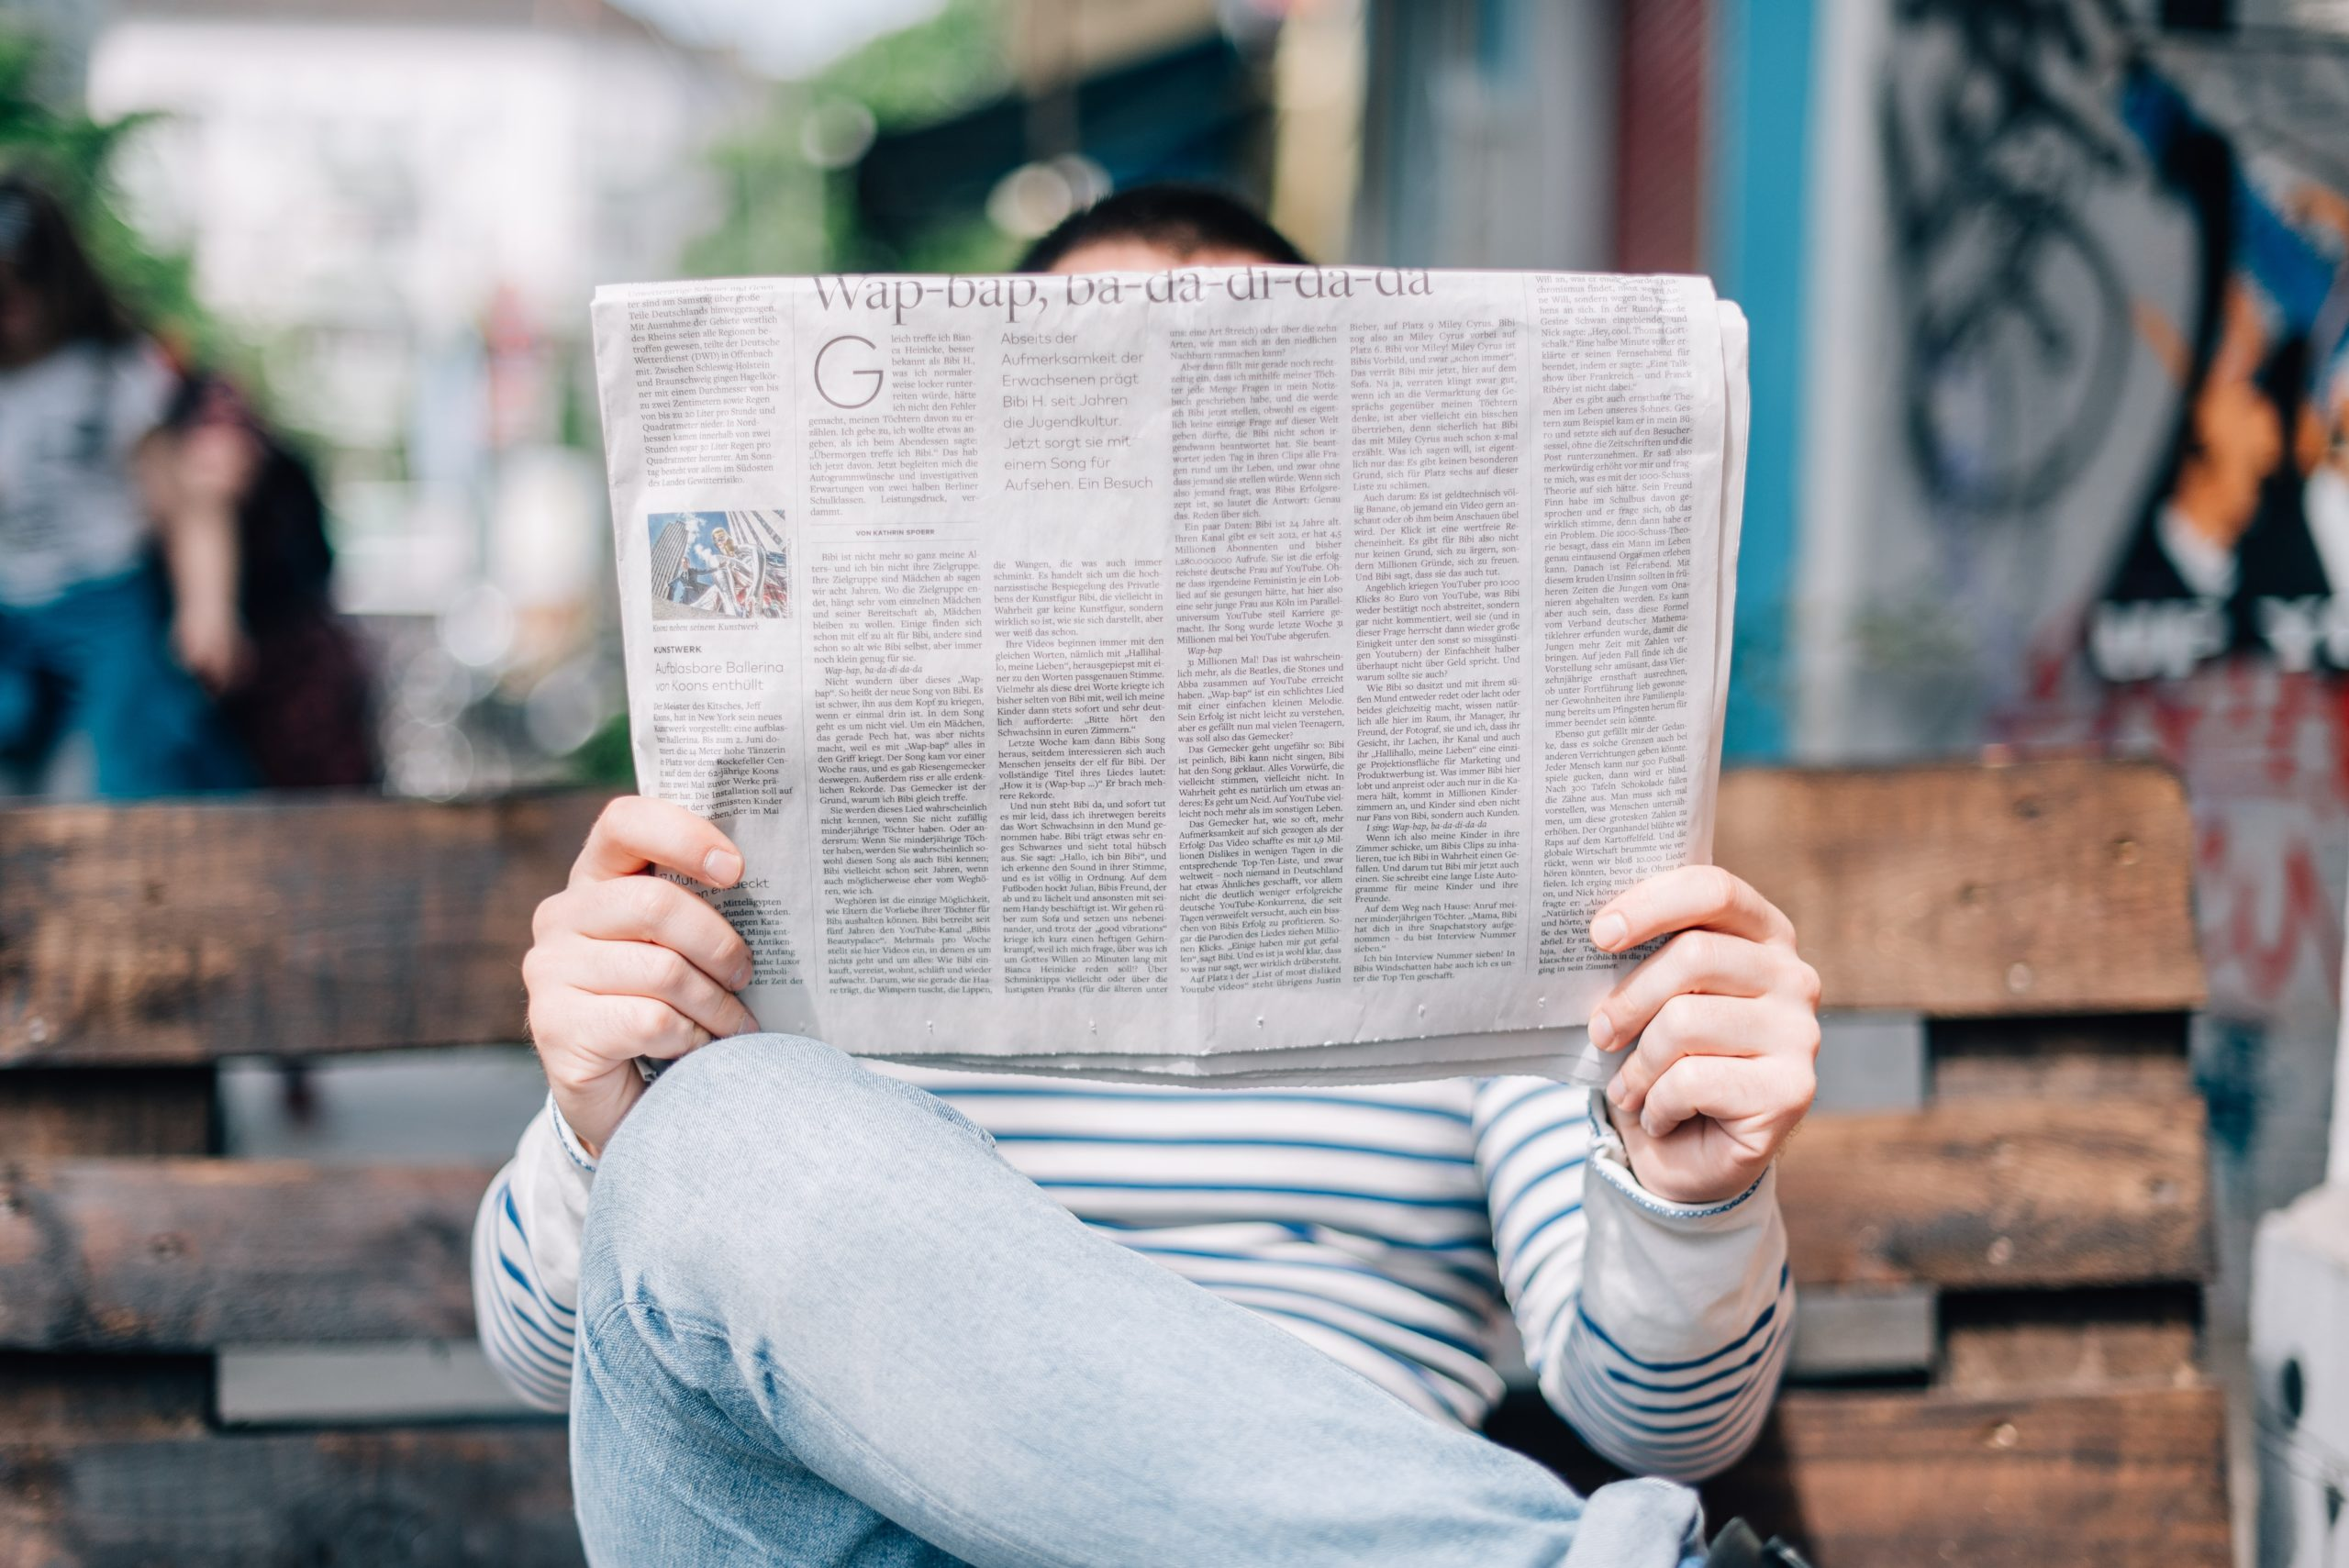 Person sitting down reading a newspaper